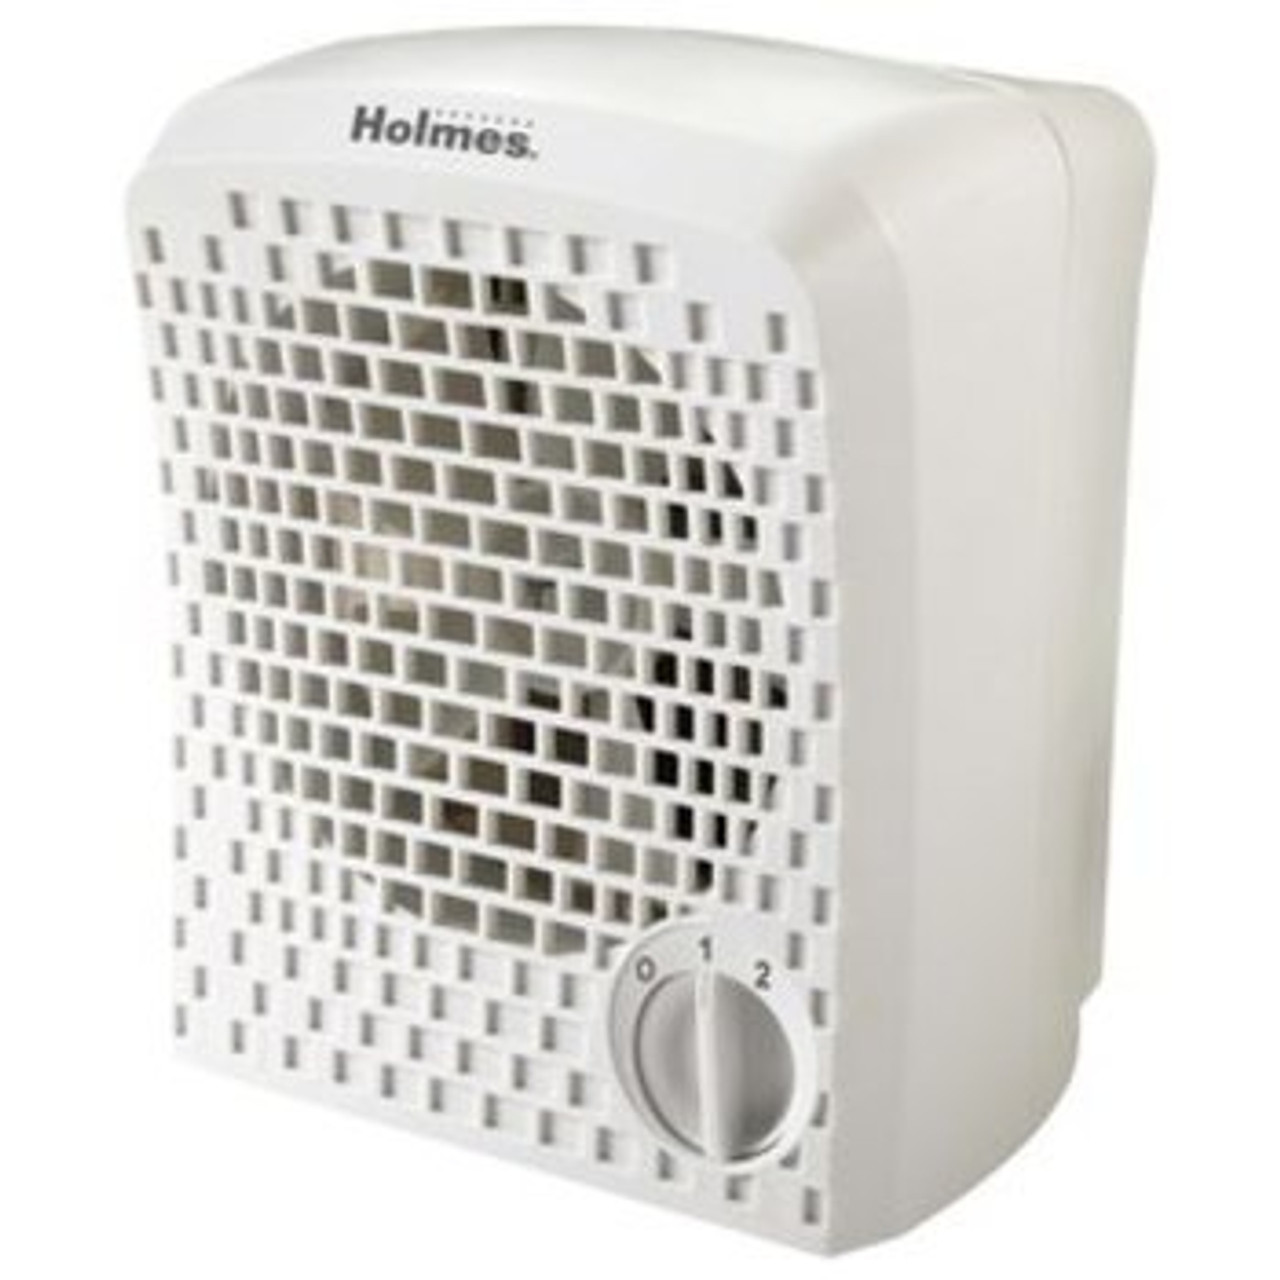 Holmes Air Purifier Hidden Camera W Dvr Wifi Remote View